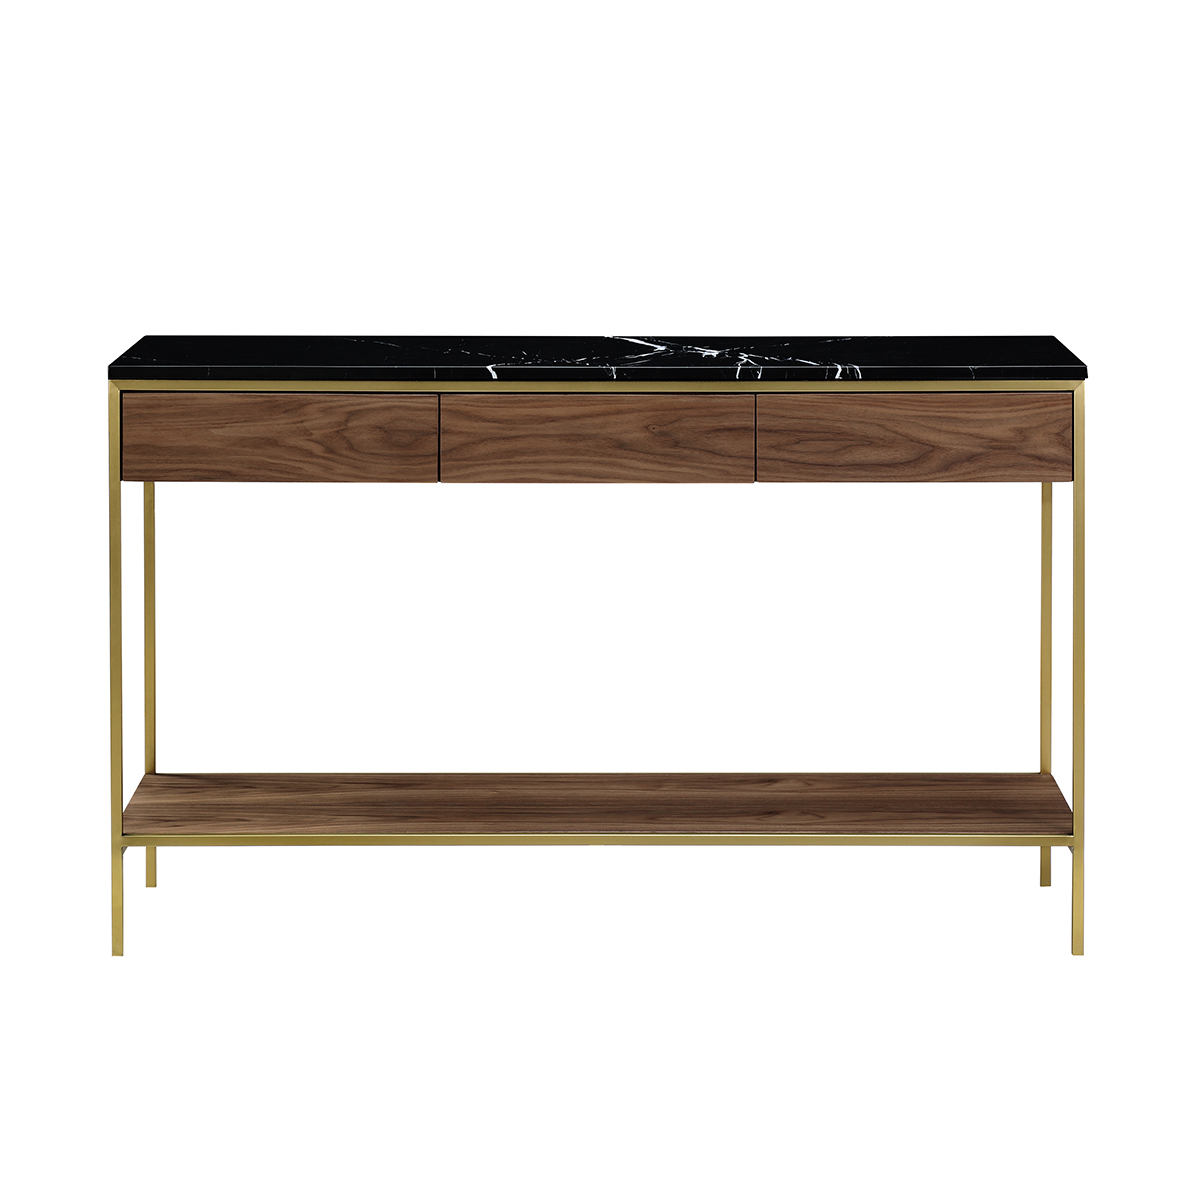 Erin Console Table – Mässing & Valnöt